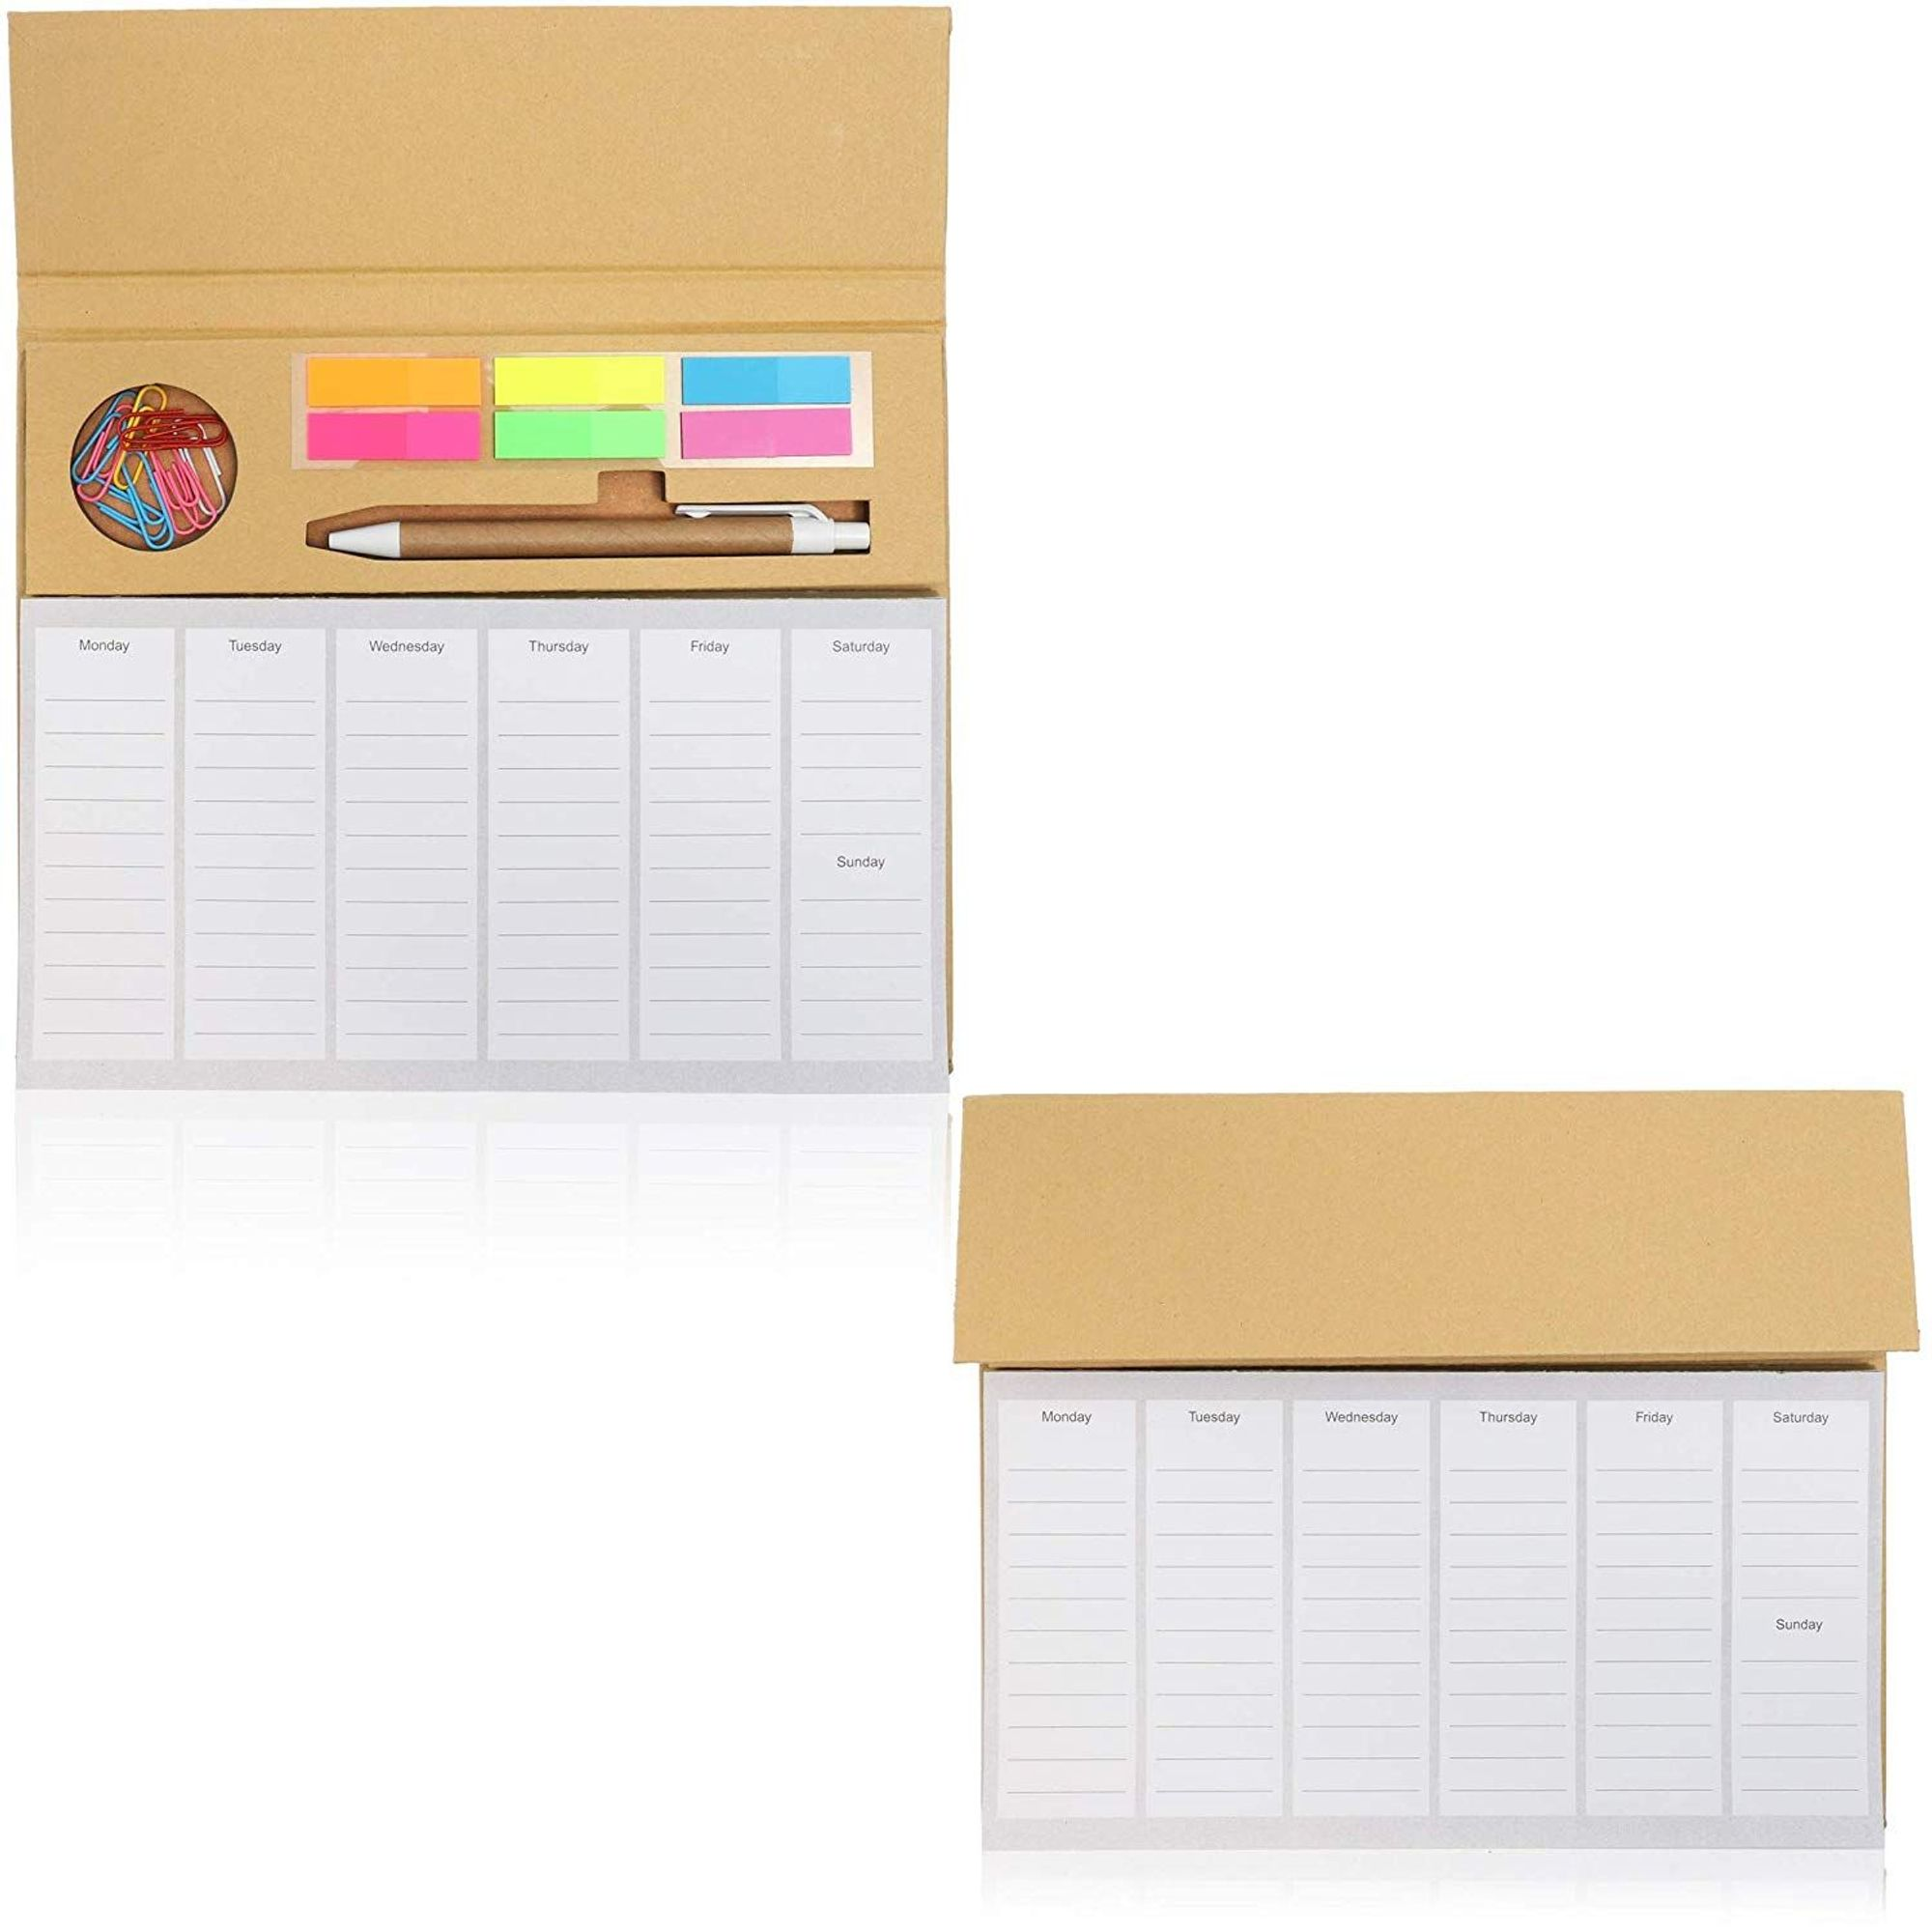 2 Pack Desktop Weekly Planner Pad Calendar With To Do List And Sticky Notes Notepad Organizer Schedule Includes 10 Paper Clips 1 Ball Pen Walmart Com Walmart Com